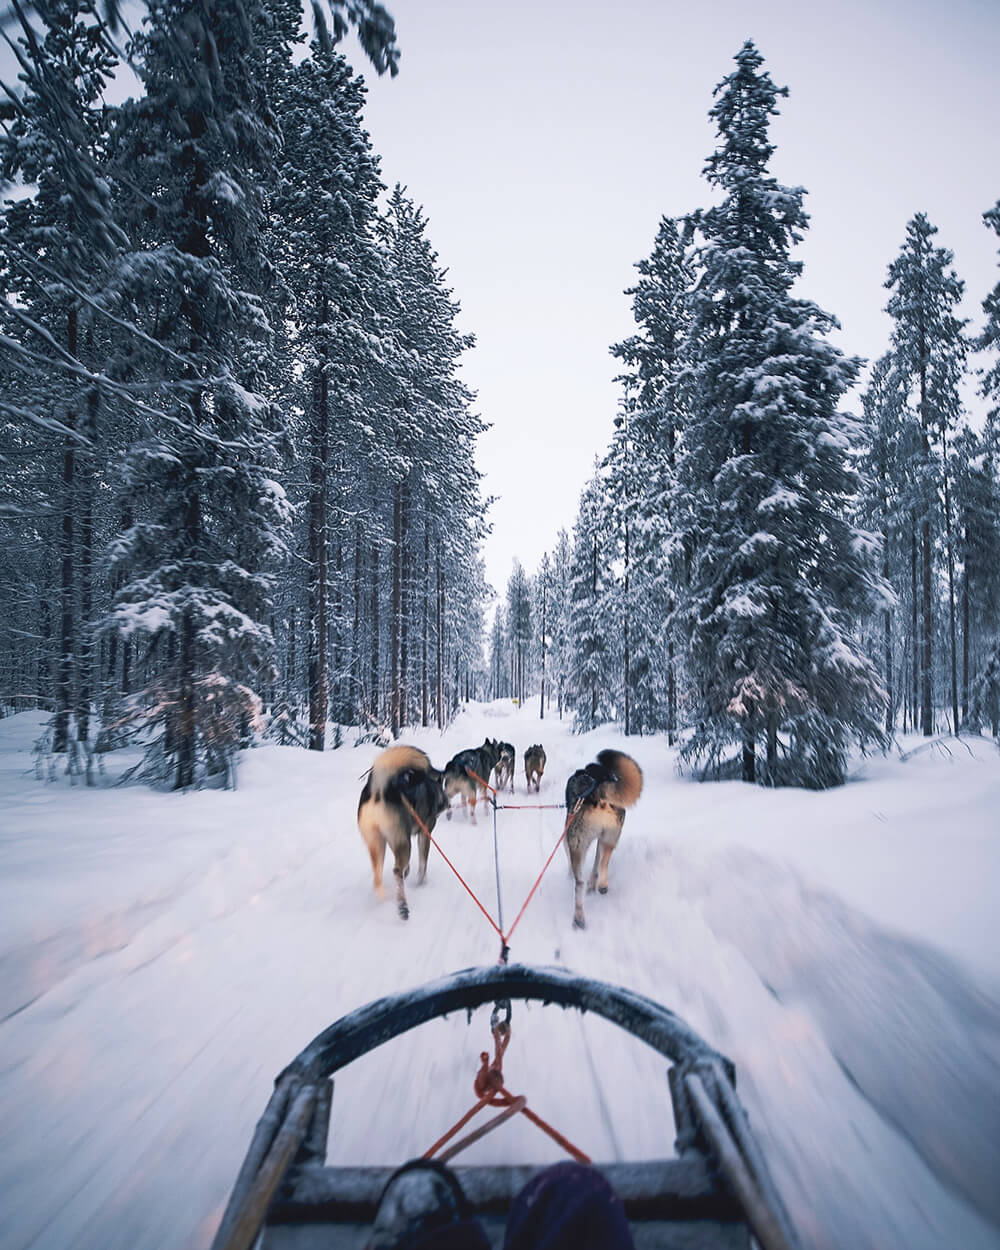 Kusky ride in Kittilä. Photo by Elaine Li